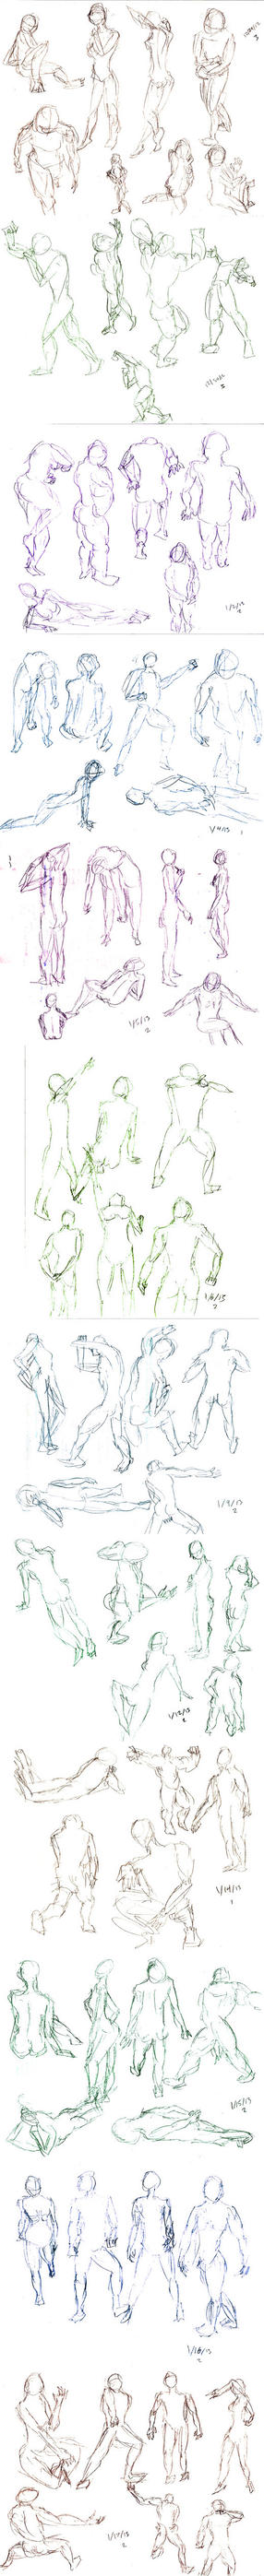 Dumpy Dump - Gesture Drawing 1 by AiZhaoDao